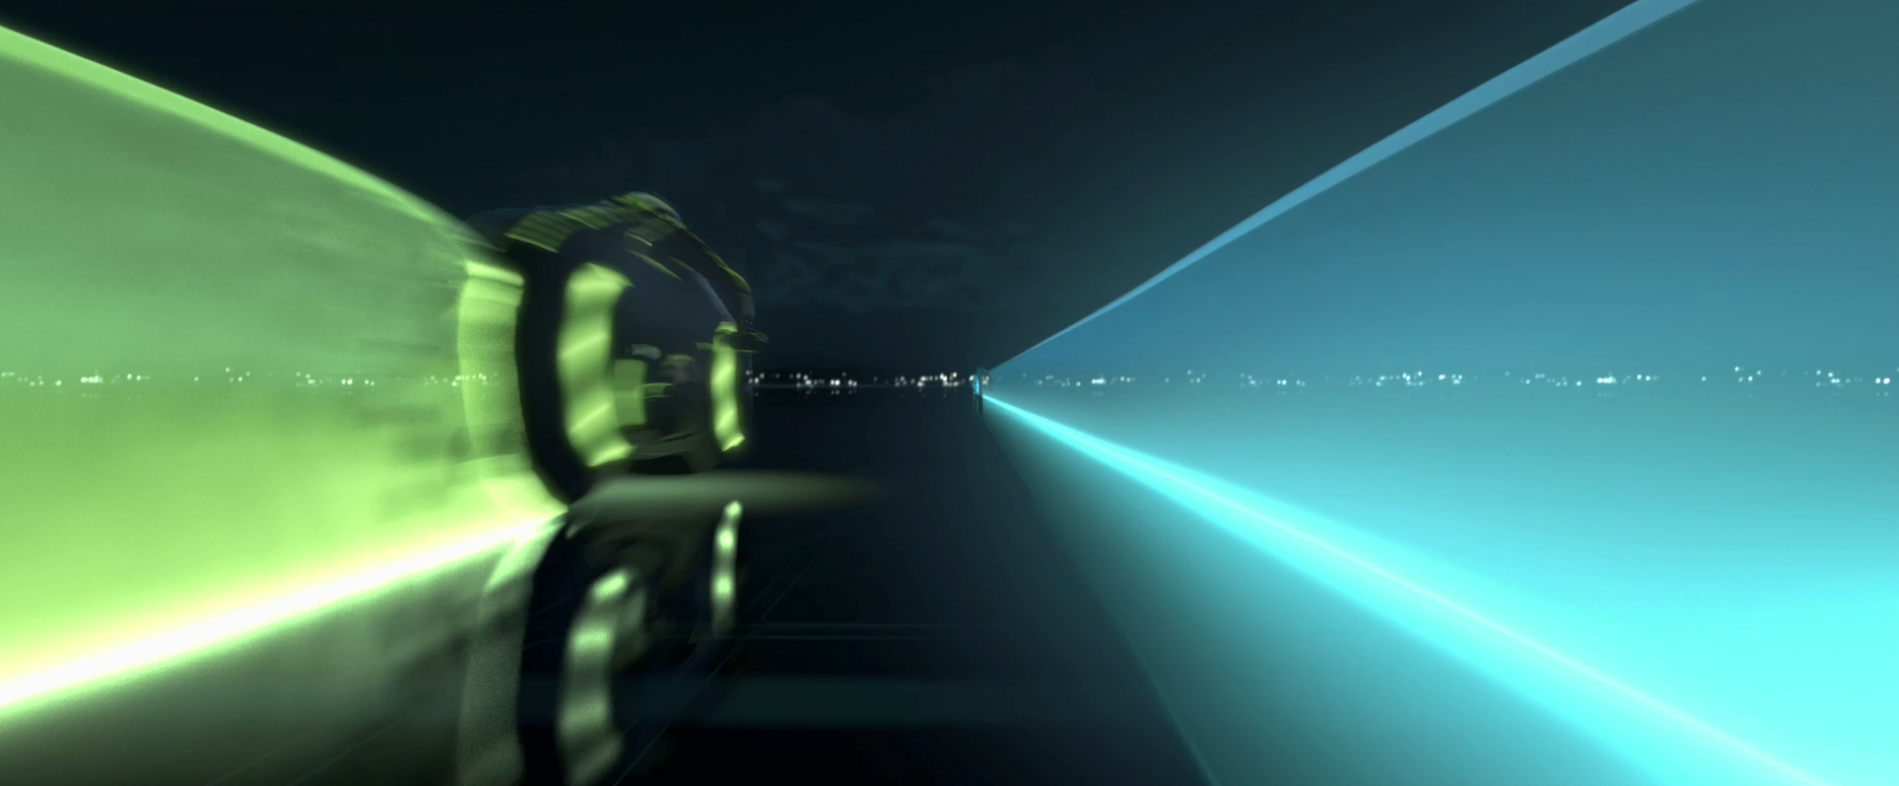 tron-legacy-light-cycle-race-wallpaper.png